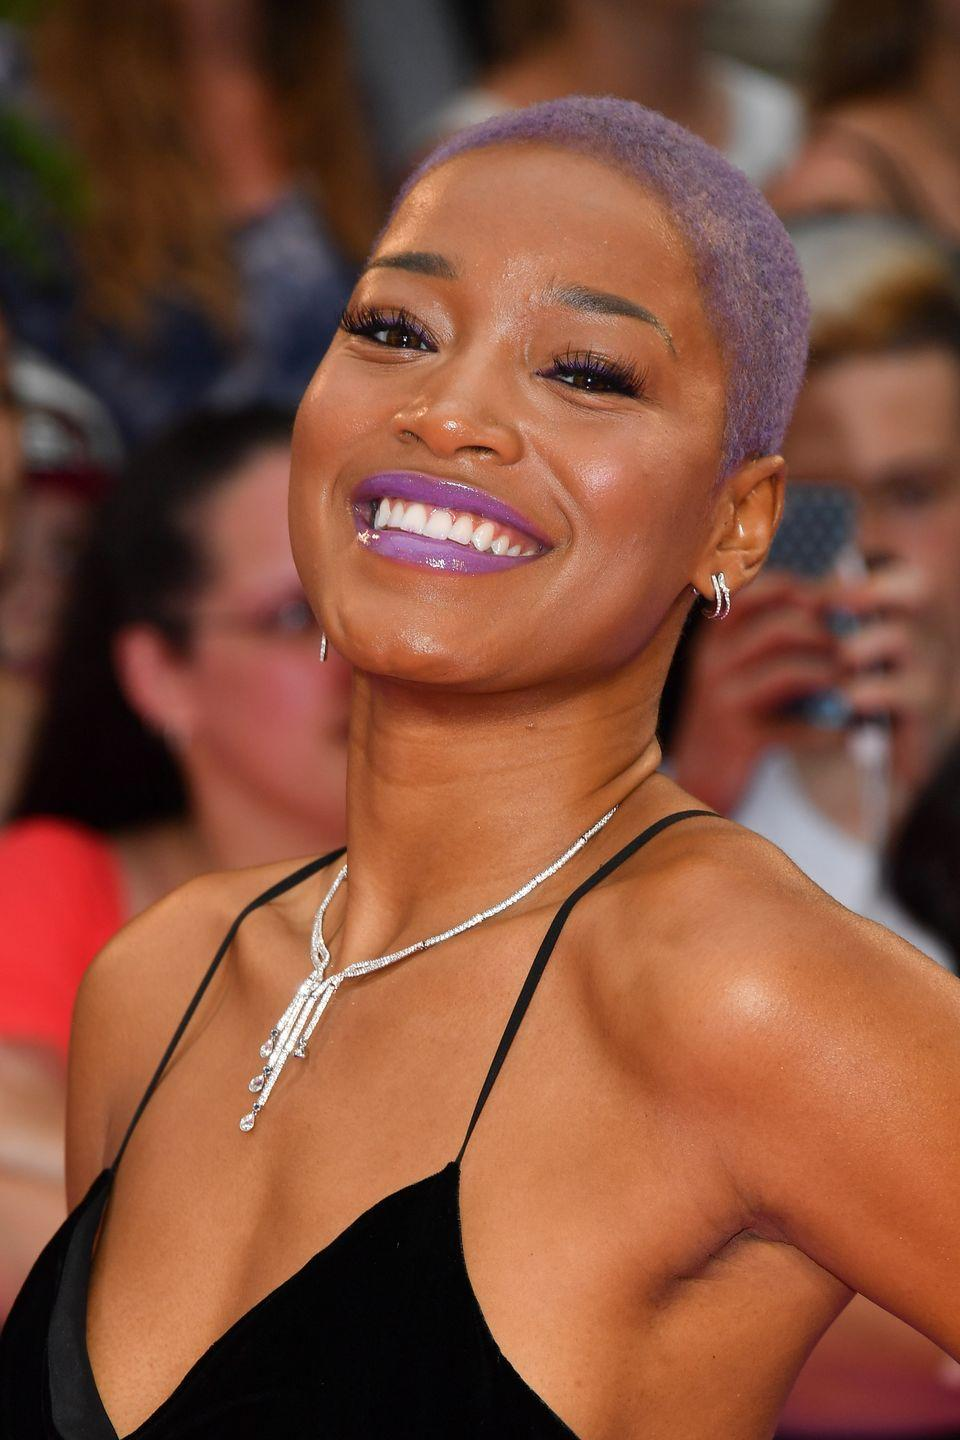 """<p>Keke Palmer shaved her head for an acting role in 2017, telling <a href=""""https://www.refinery29.com/en-us/2017/06/159297/keke-palmer-natural-hair-shaved-head-reason"""" rel=""""nofollow noopener"""" target=""""_blank"""" data-ylk=""""slk:Refinery 29"""" class=""""link rapid-noclick-resp"""">Refinery 29</a> """"I love finding new versions of myself.""""</p>"""